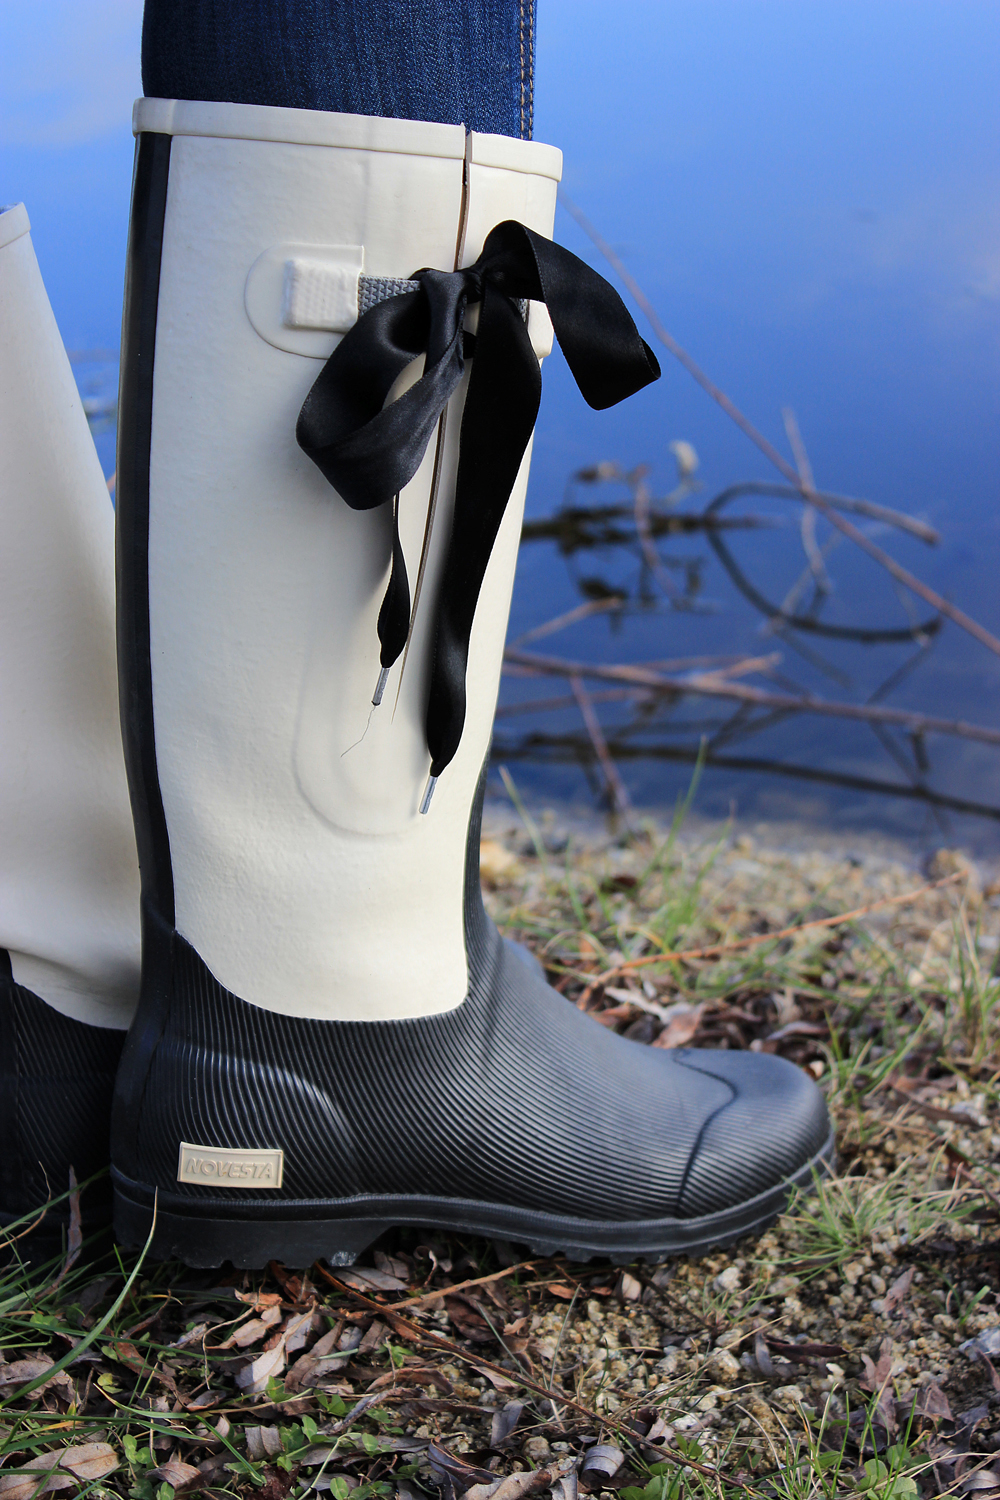 lake-winter-wellies-novesta-janatini-jana-tomas-5